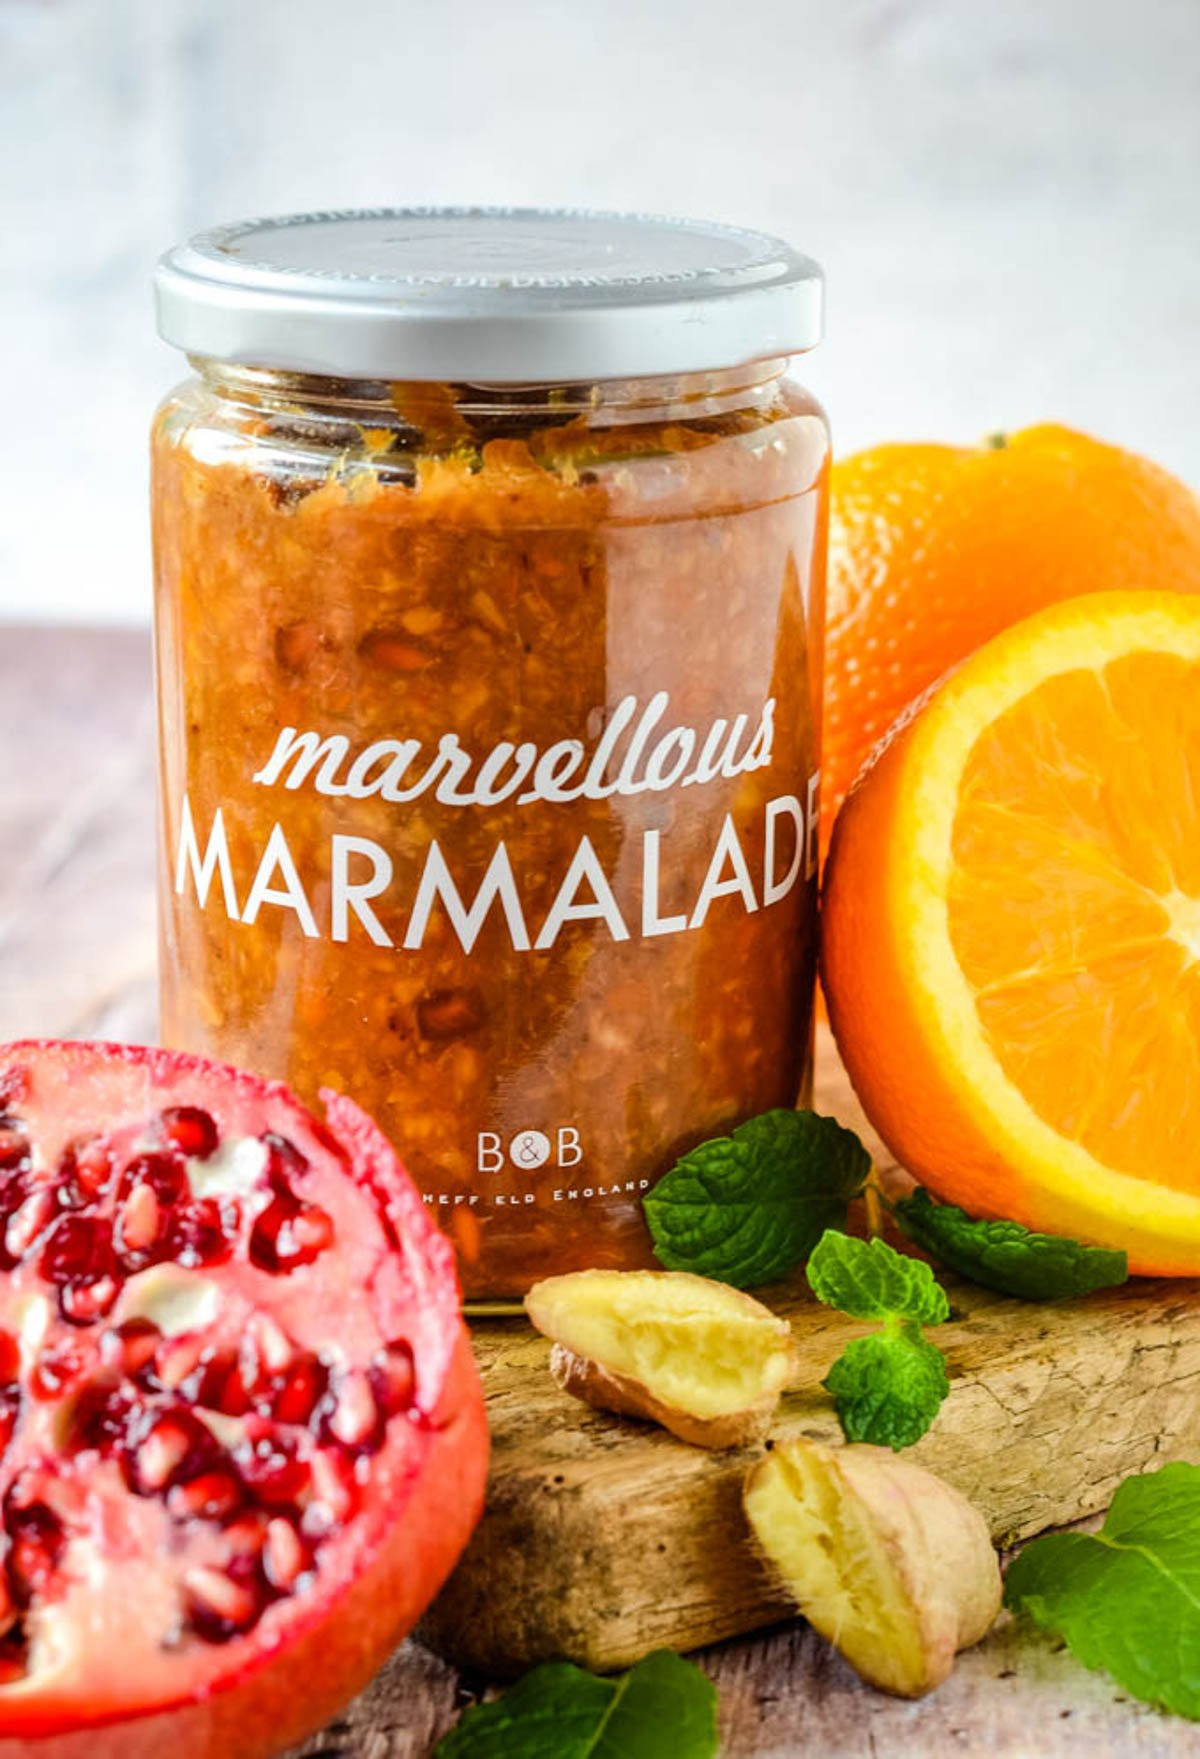 jat of marmalade with ingredients beside it